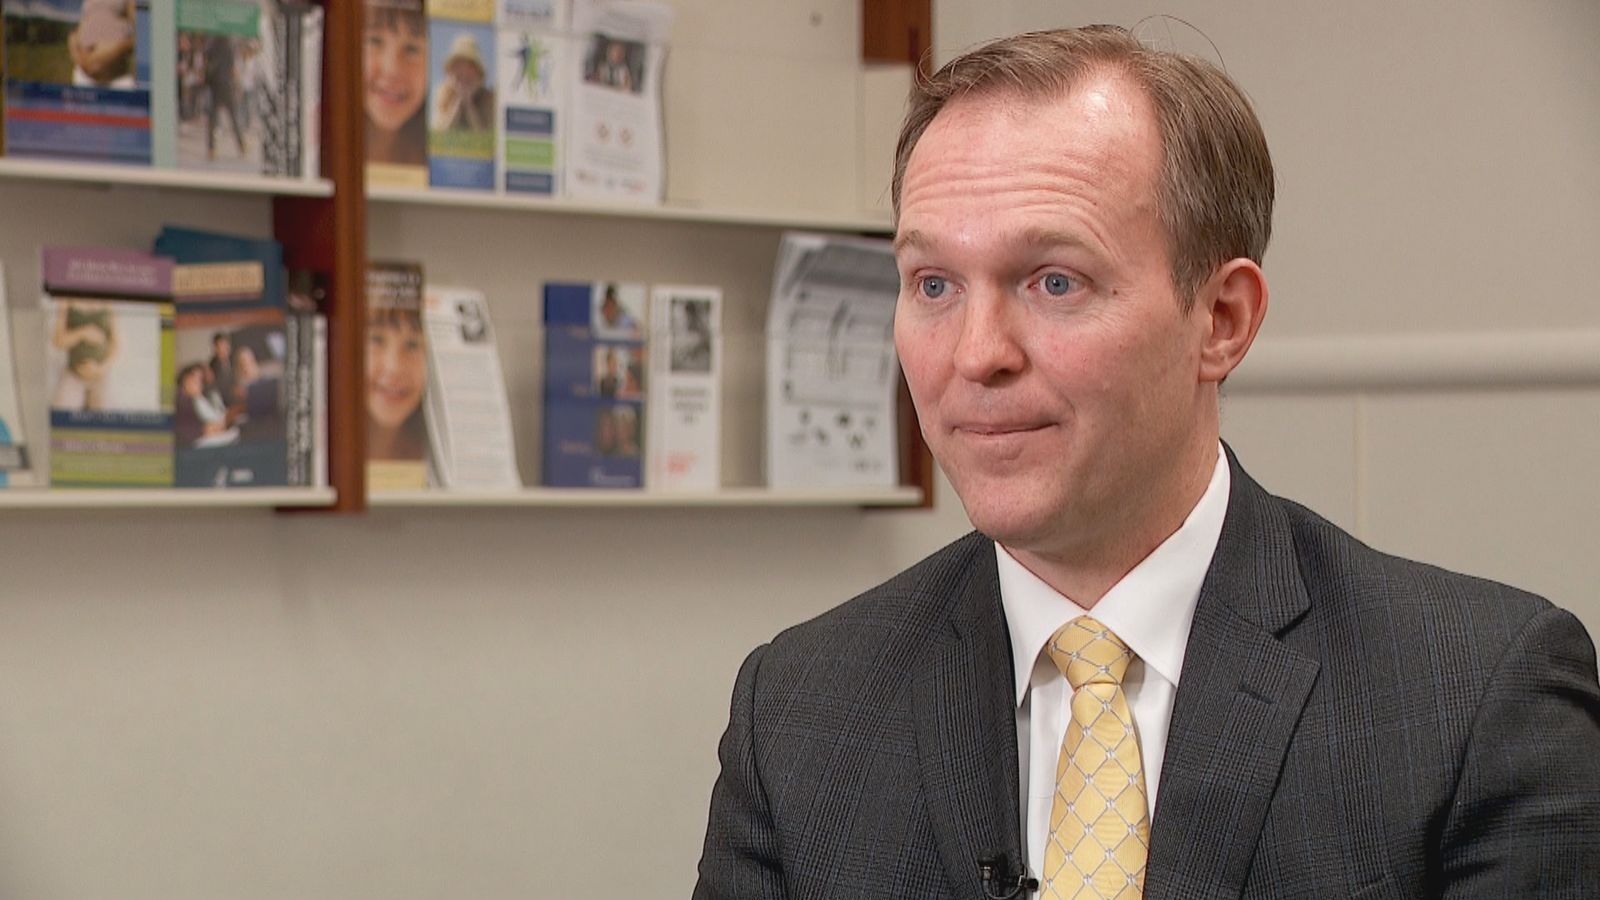 <p>Rep. Ben McAdams is seemingly in a good position with voters in his 4th Congressional District as he aims for another term in Washington according to a new survey. (Photo: KUTV)&nbsp;<br></p>